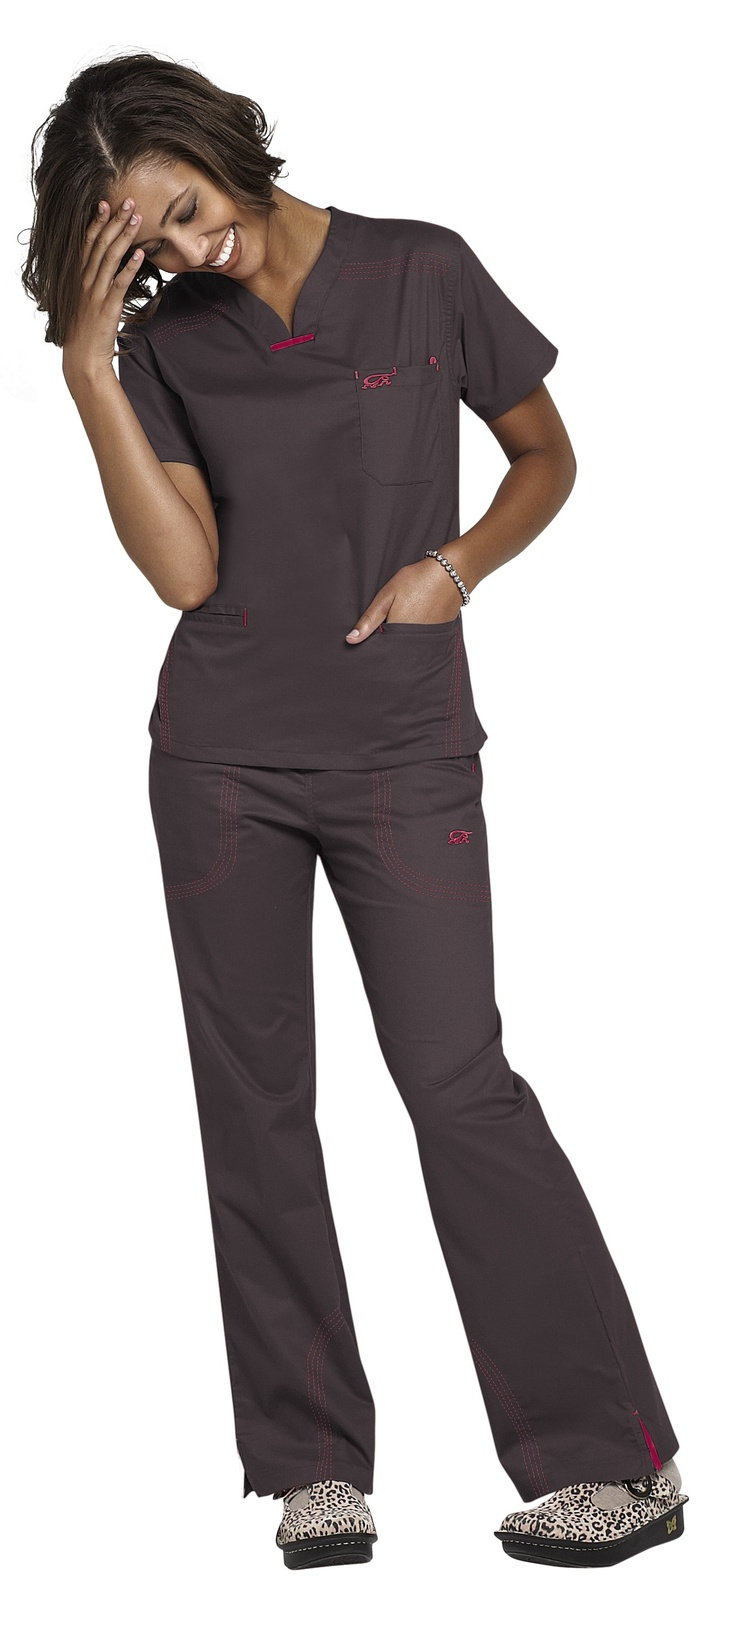 IguanaMed quattro scrub top. I love the pink and brown!   #ScrubsAndBeyondSummer